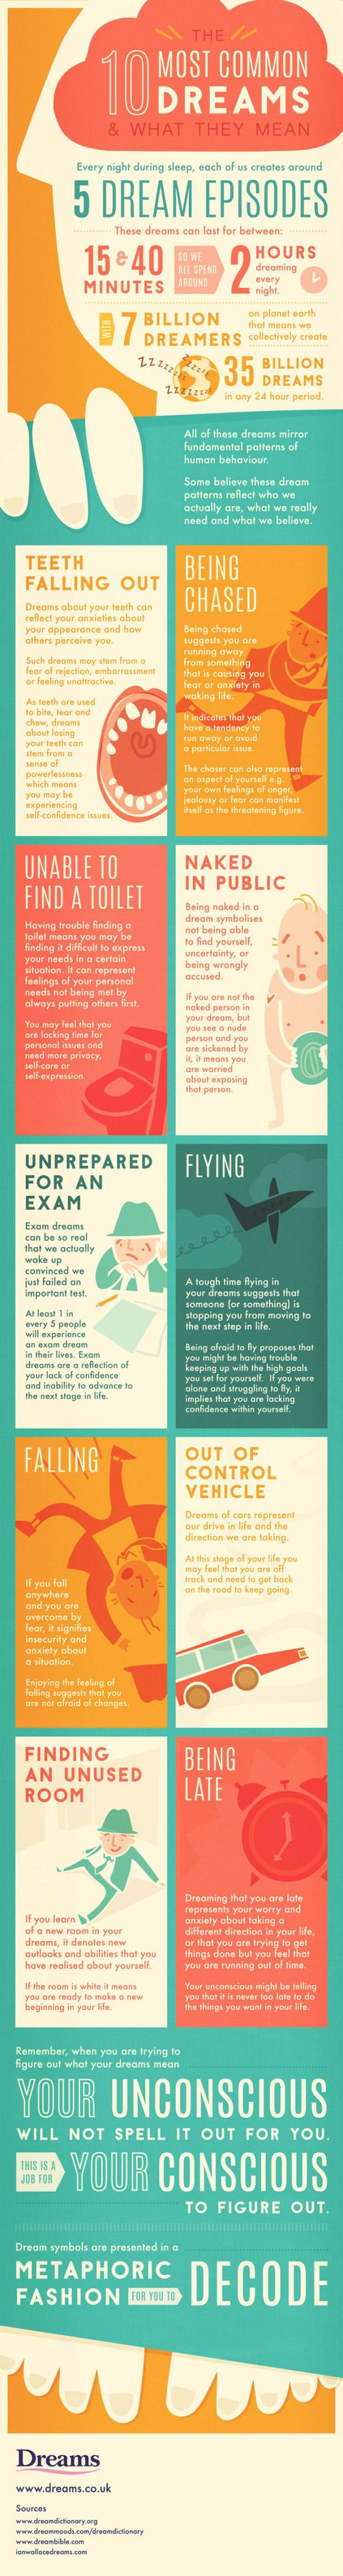 The Intriguing Meanings Behind 10 Common Dreams